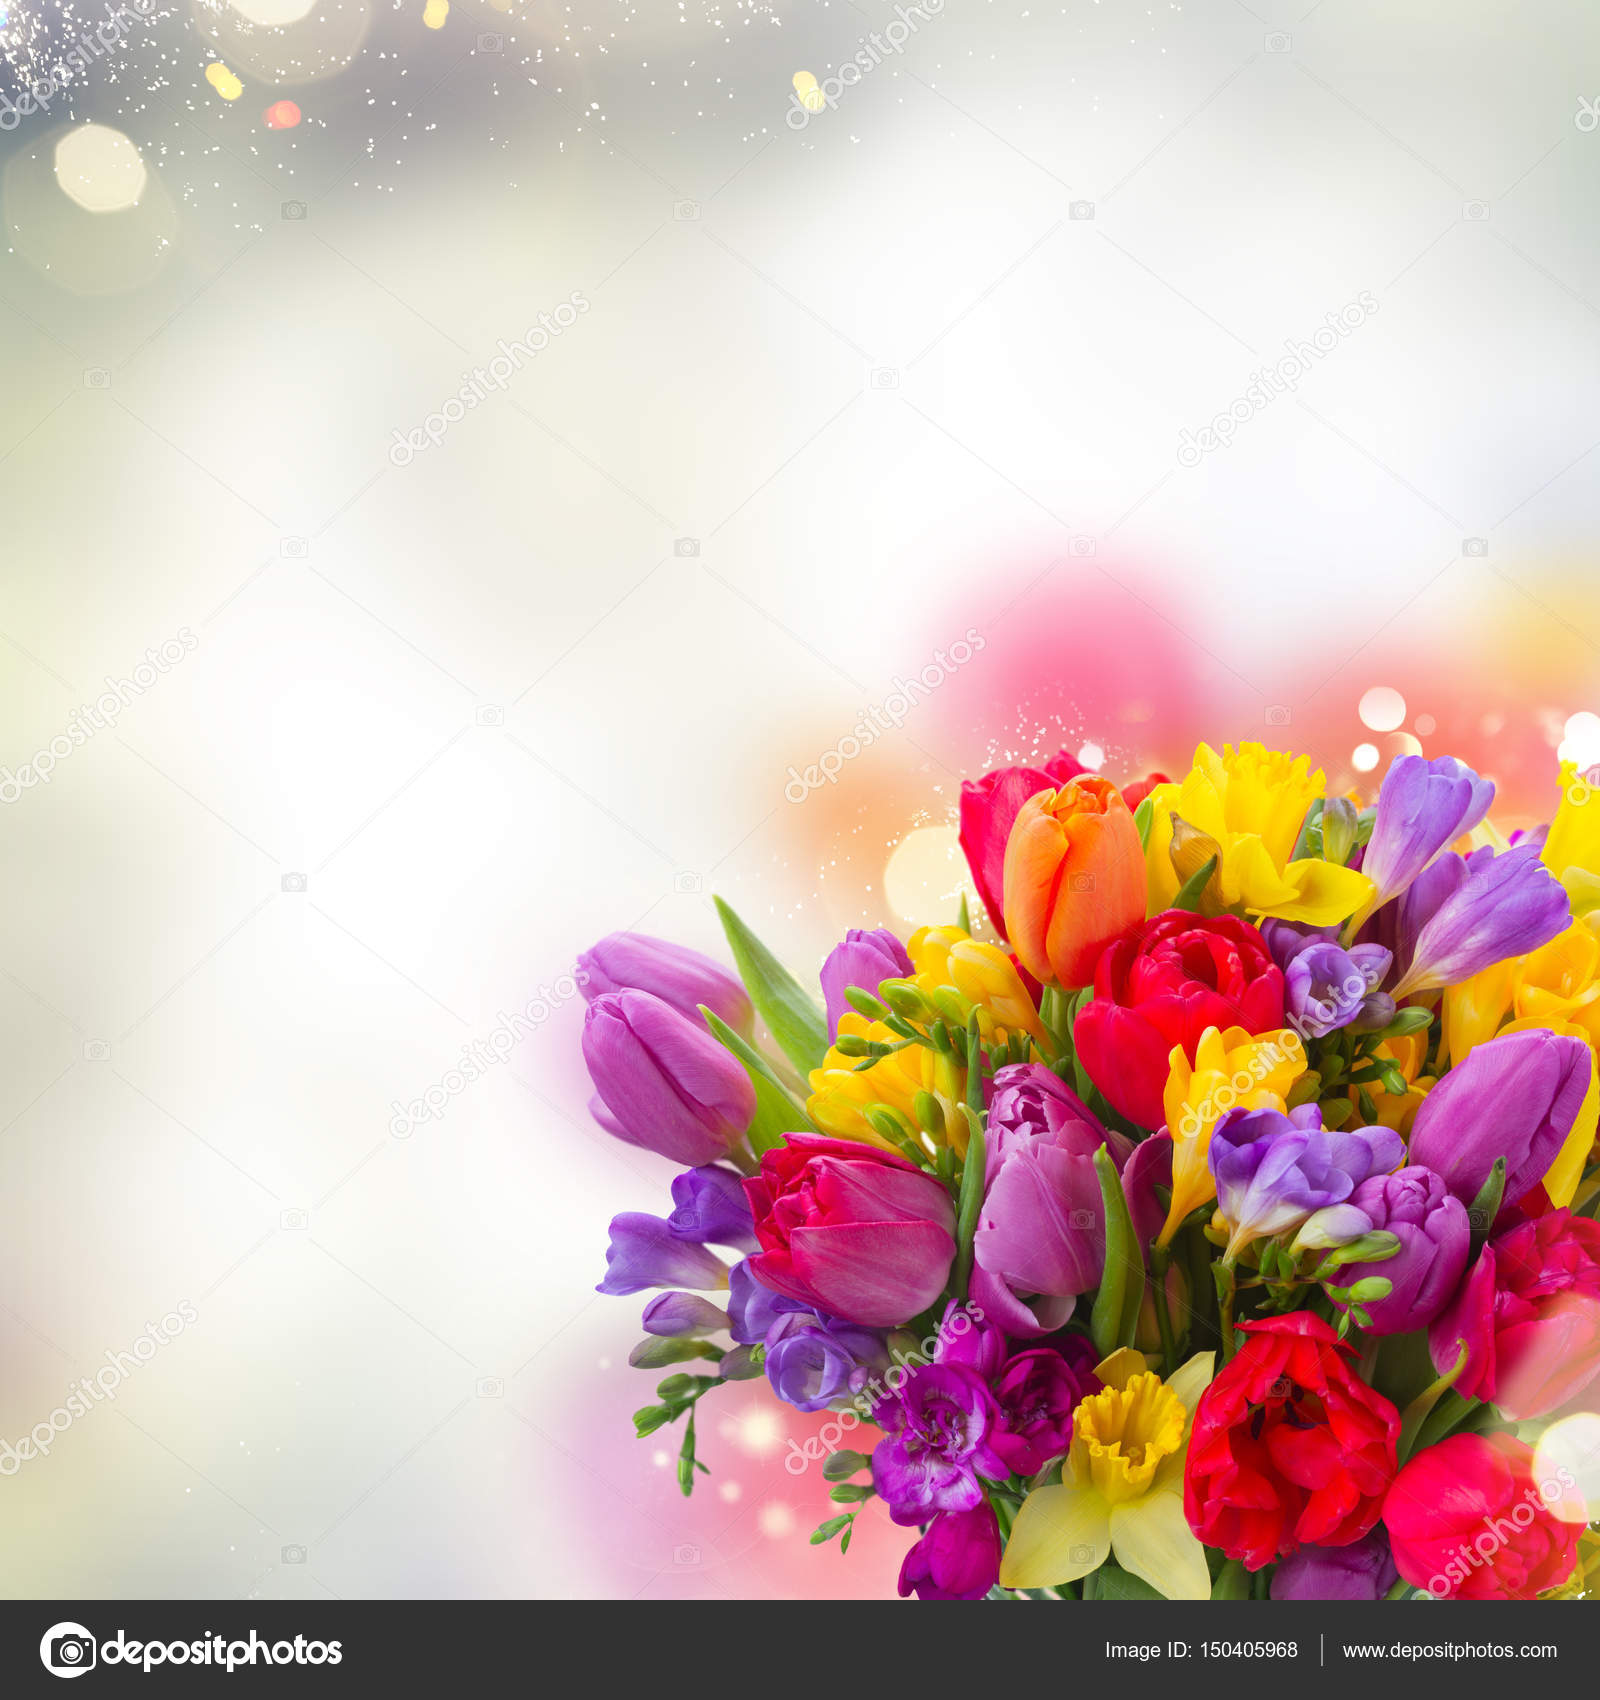 Bouquet of bright spring flowers stock photo neirfys 150405968 bouquet of bright spring flowers close up over gray bokeh background photo by neirfys mightylinksfo